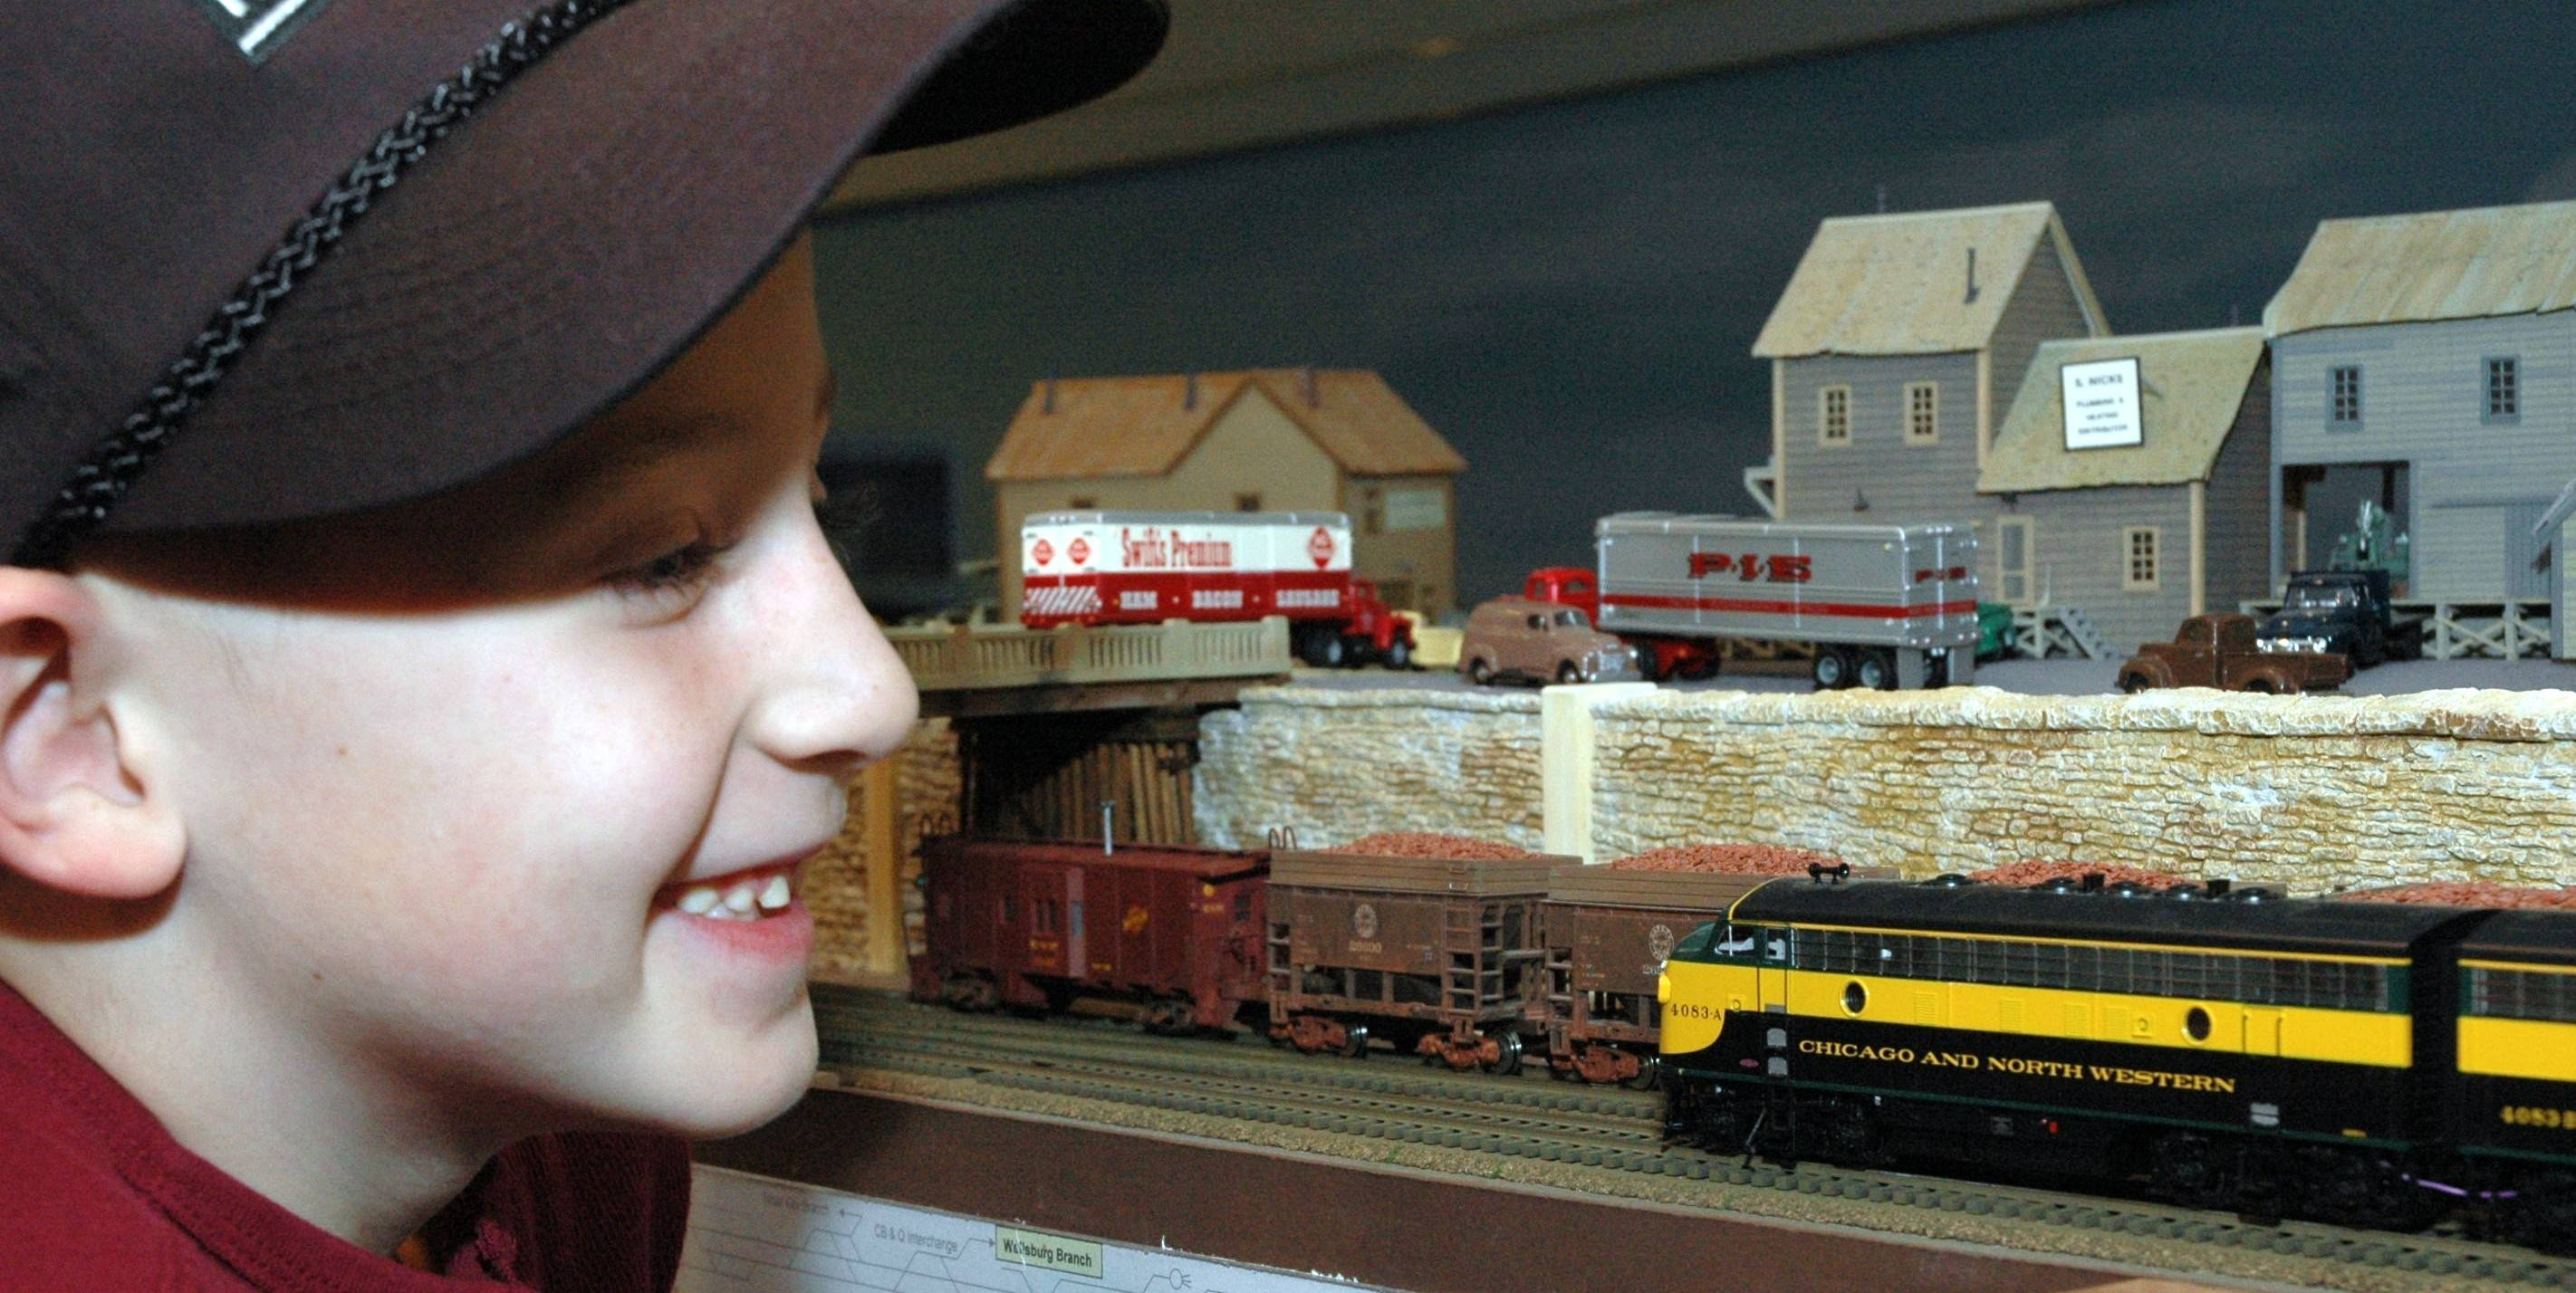 See 20 running model railroads at the High Wheeler Train Show at Harper College in Palatine.